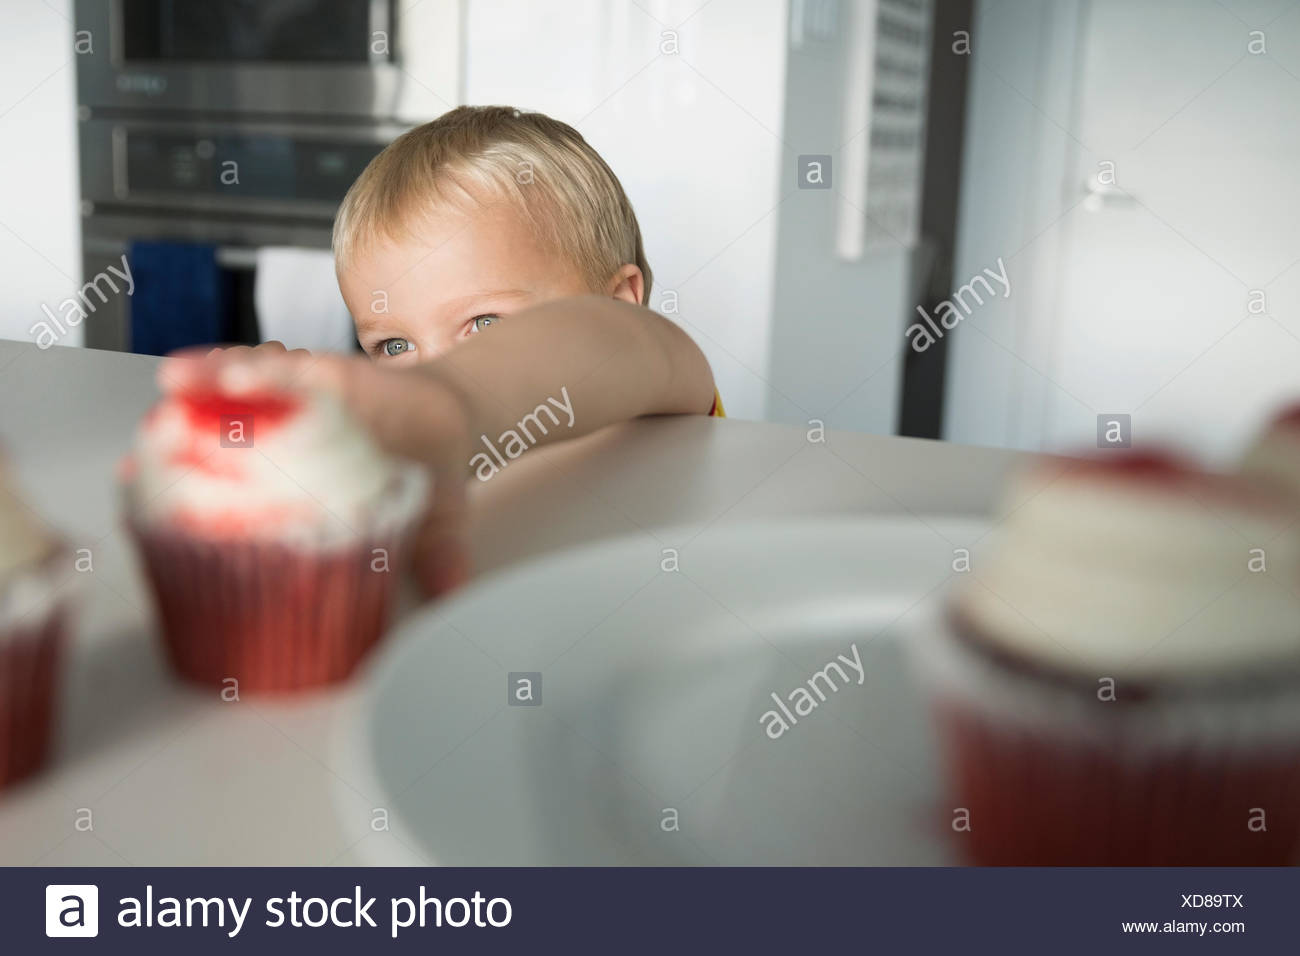 Boy reaching for cupcake on kitchen counter - Stock Image